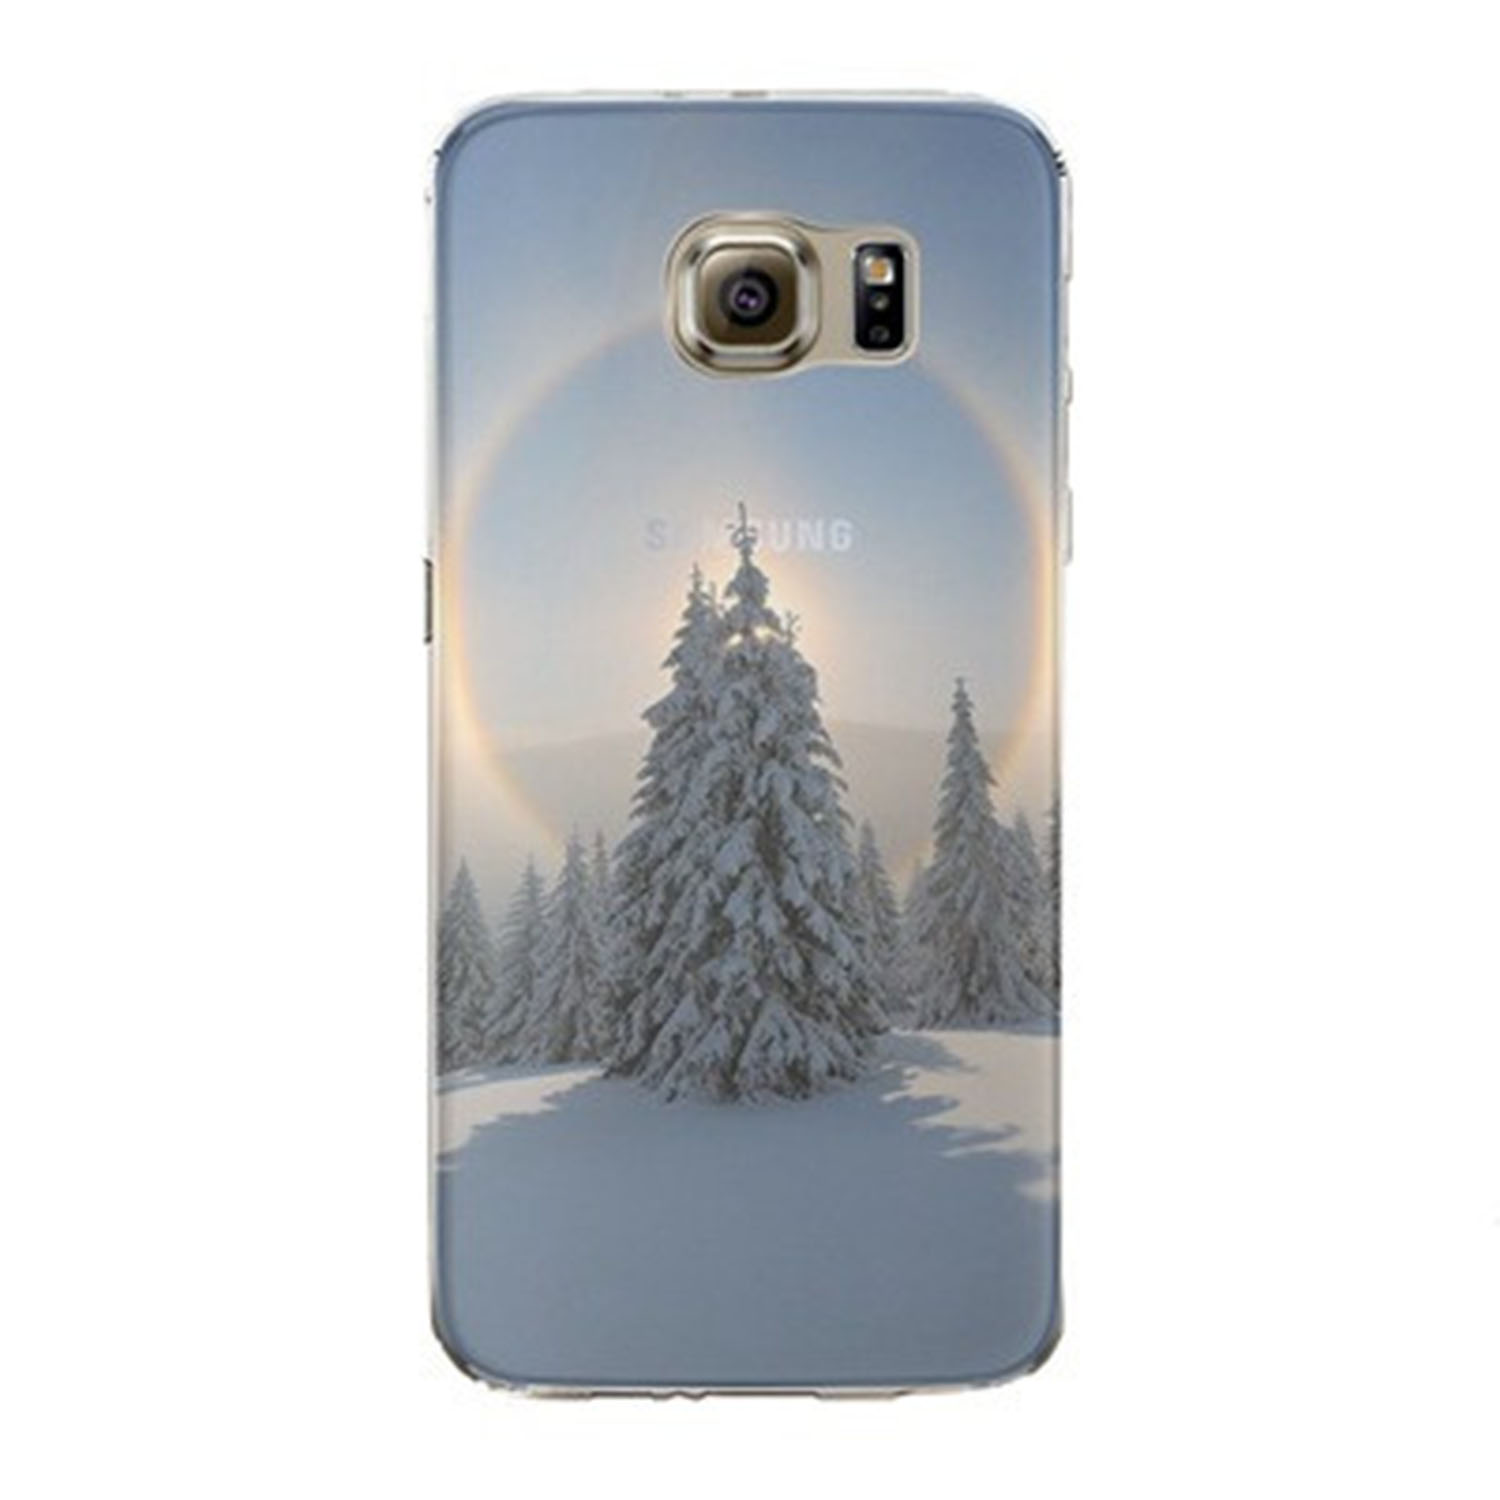 Kritzel Case Collection Galaxy S7 edge - Nature #303